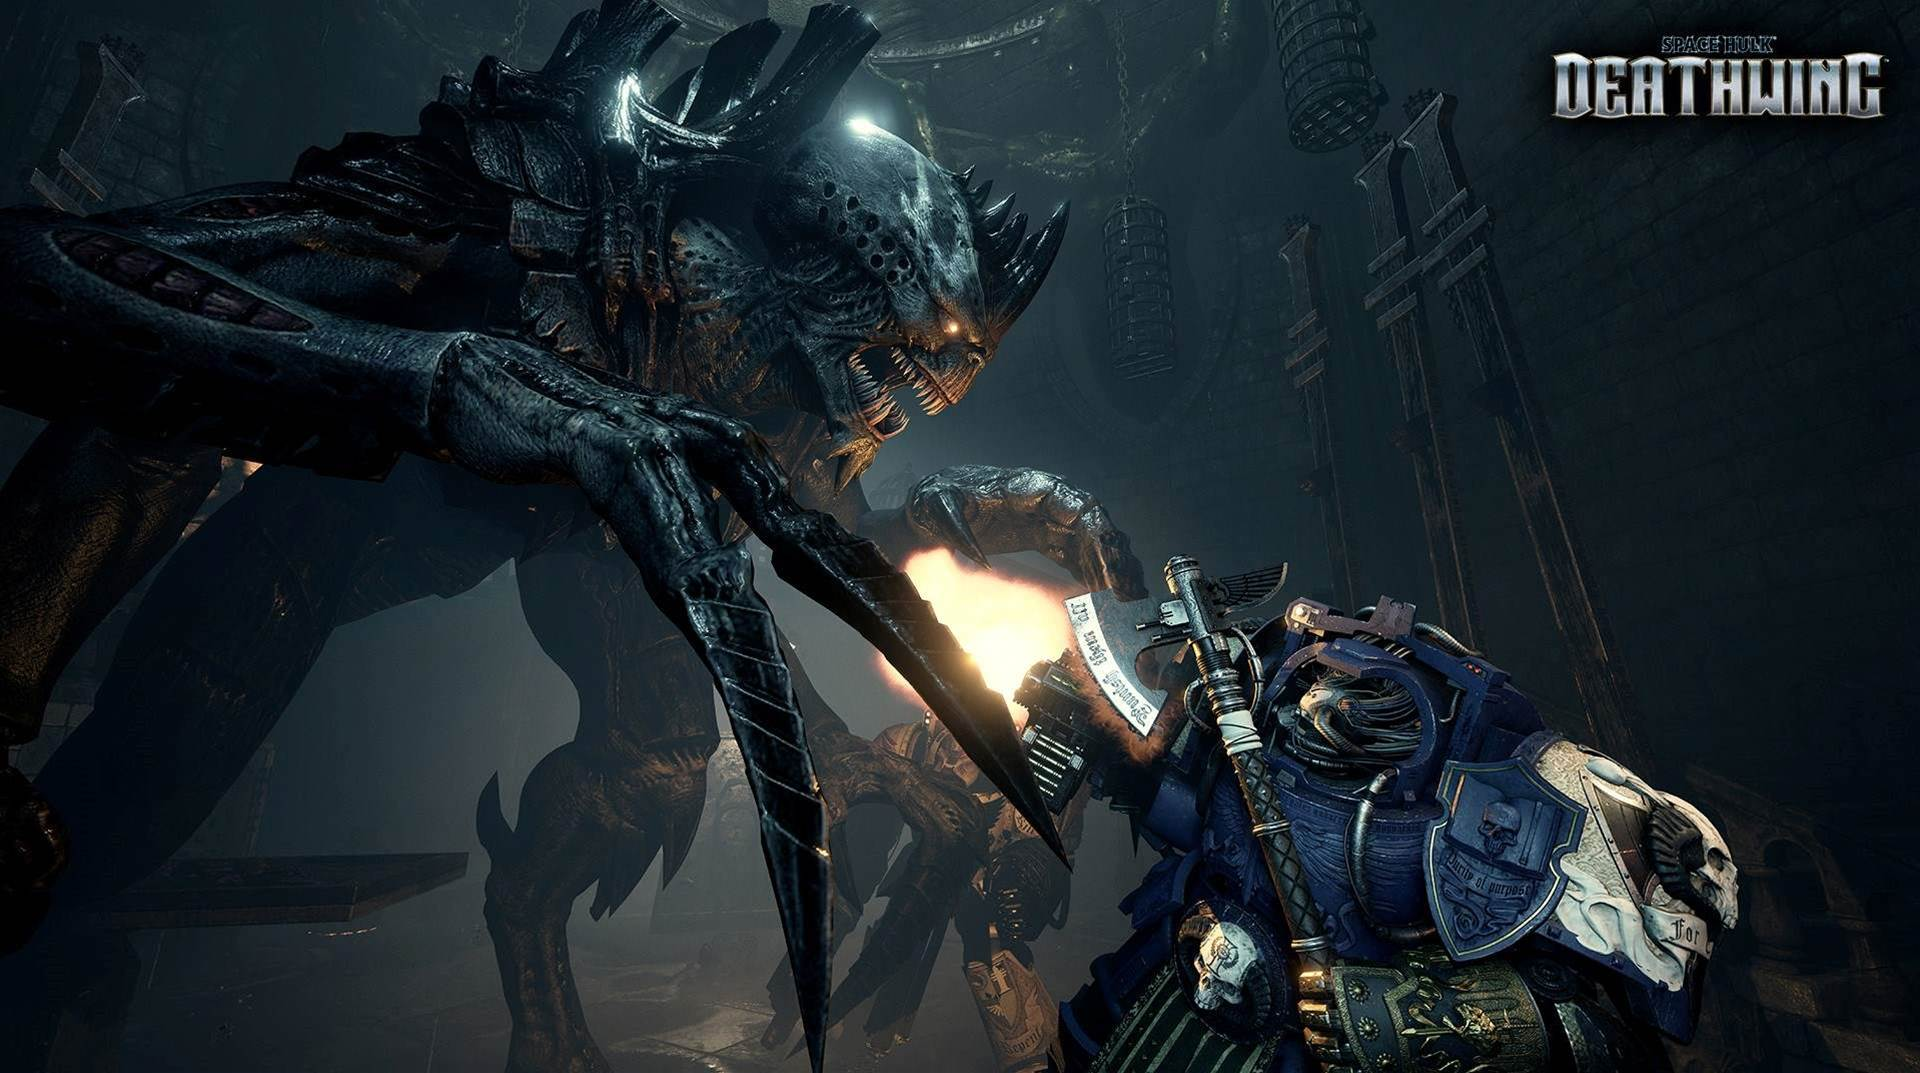 For the Emperor! Space Hulk: Deathwing screenshots